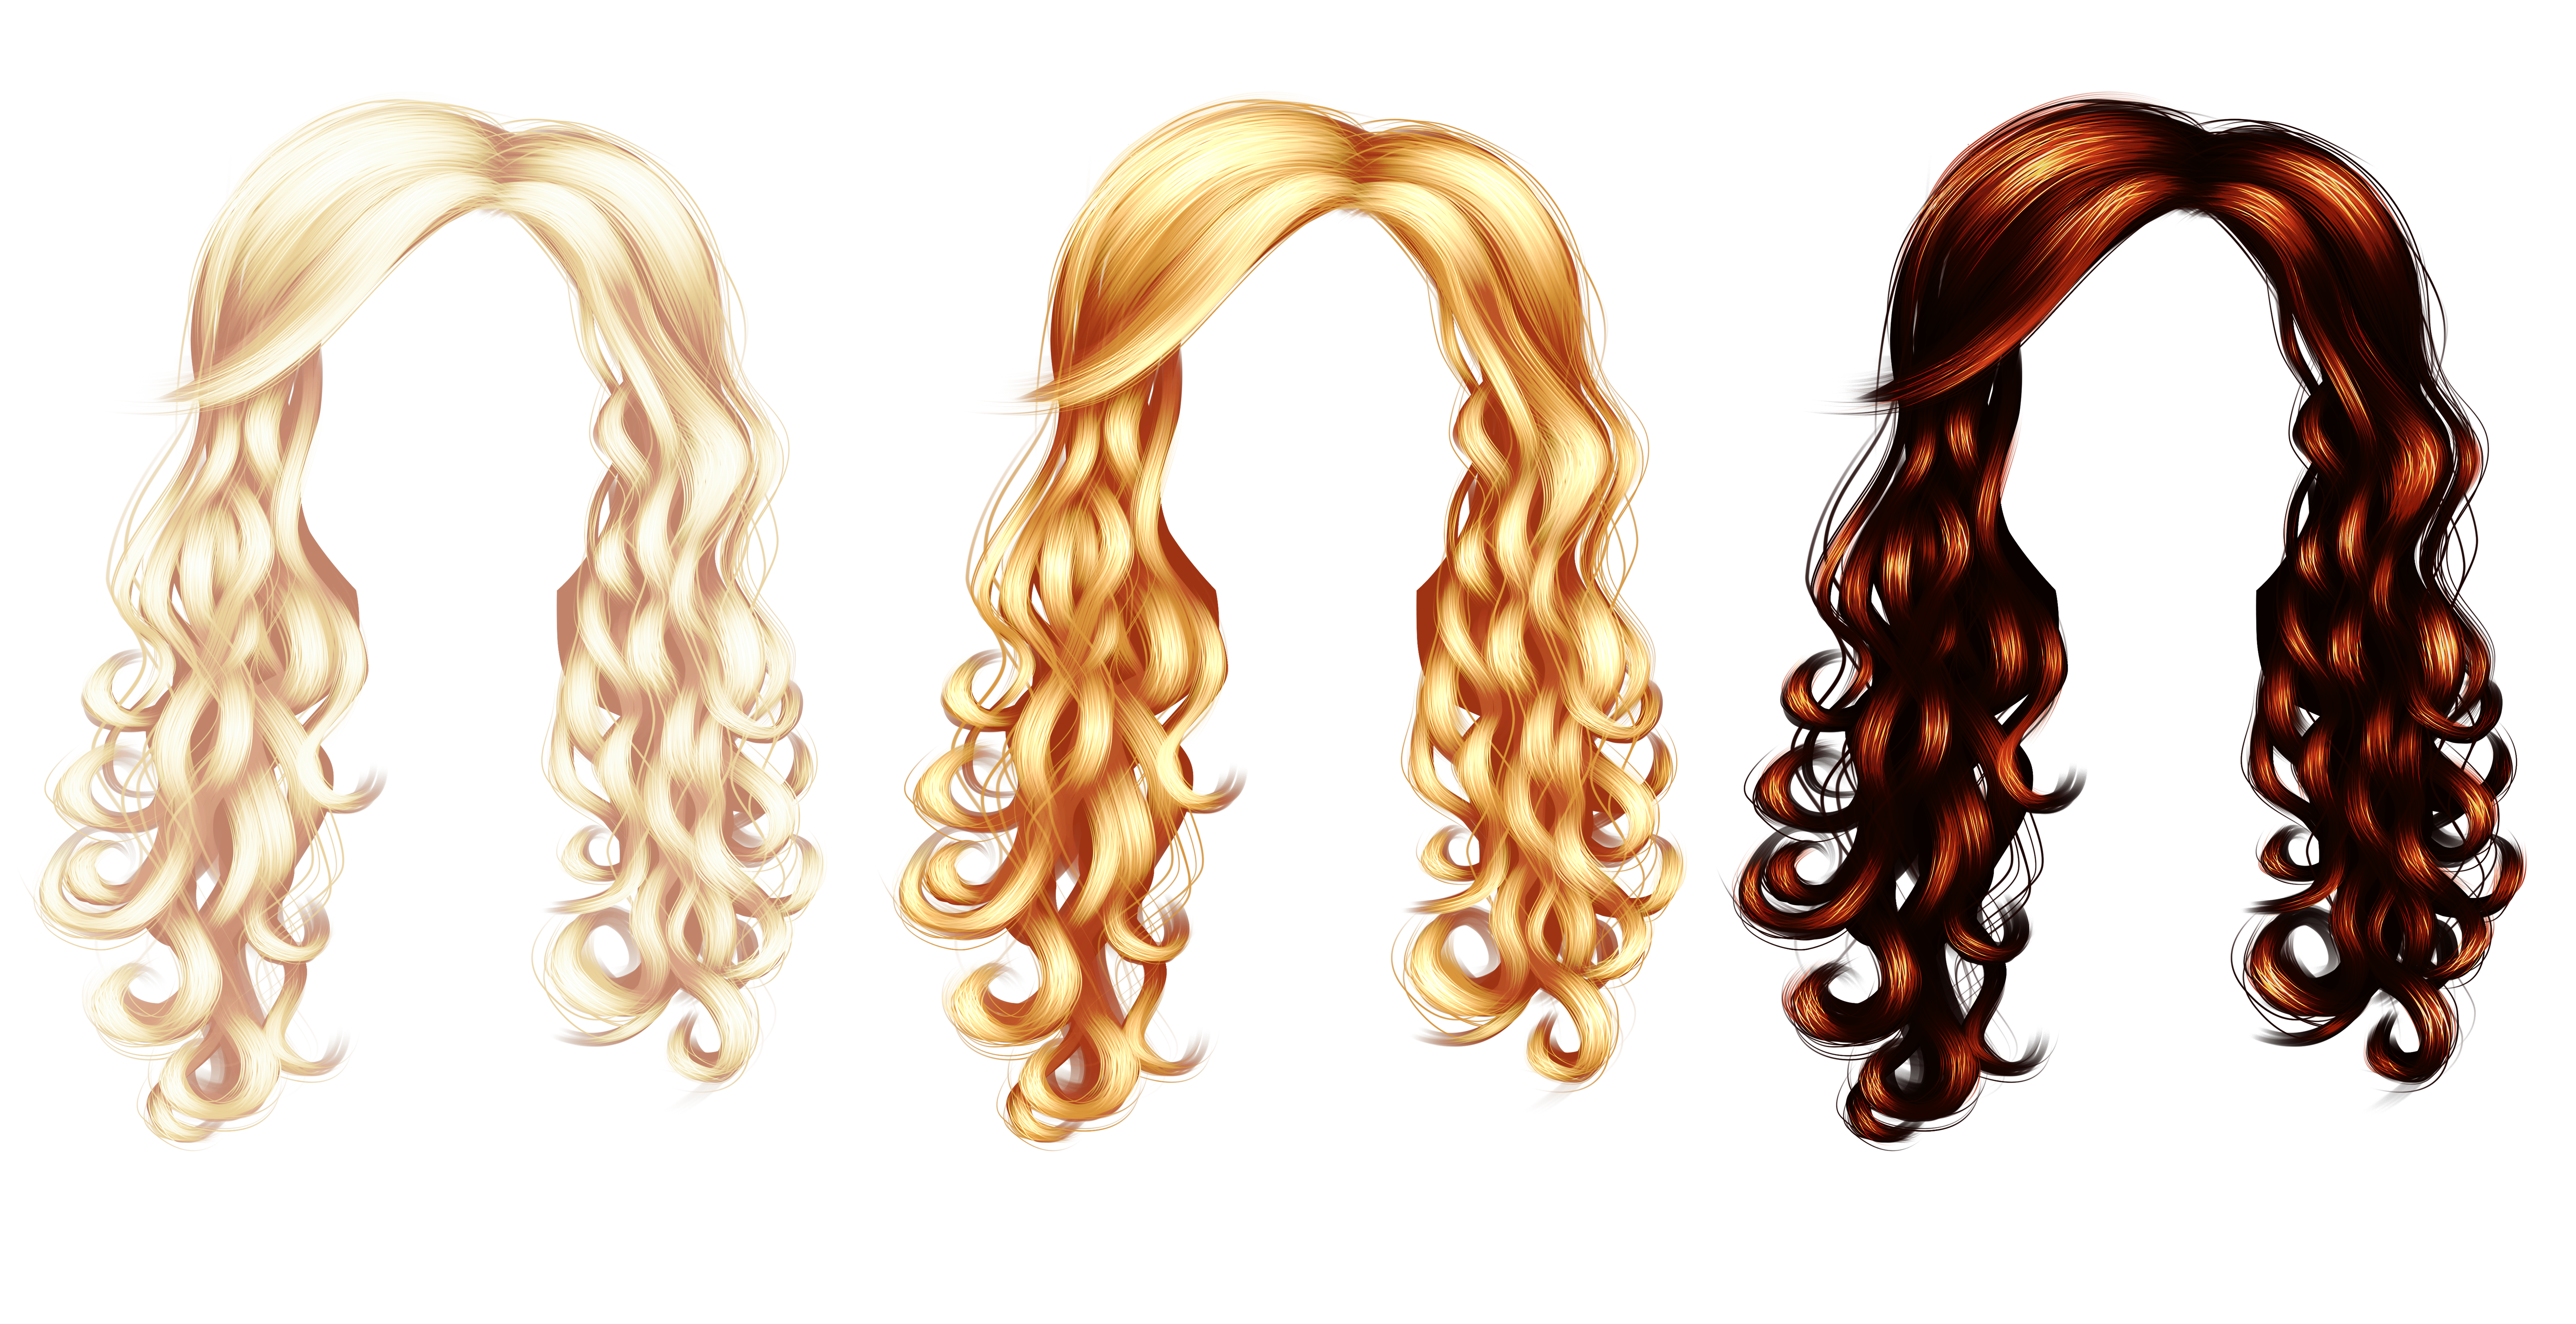 Strands of hair png. Favourites by galdimi on